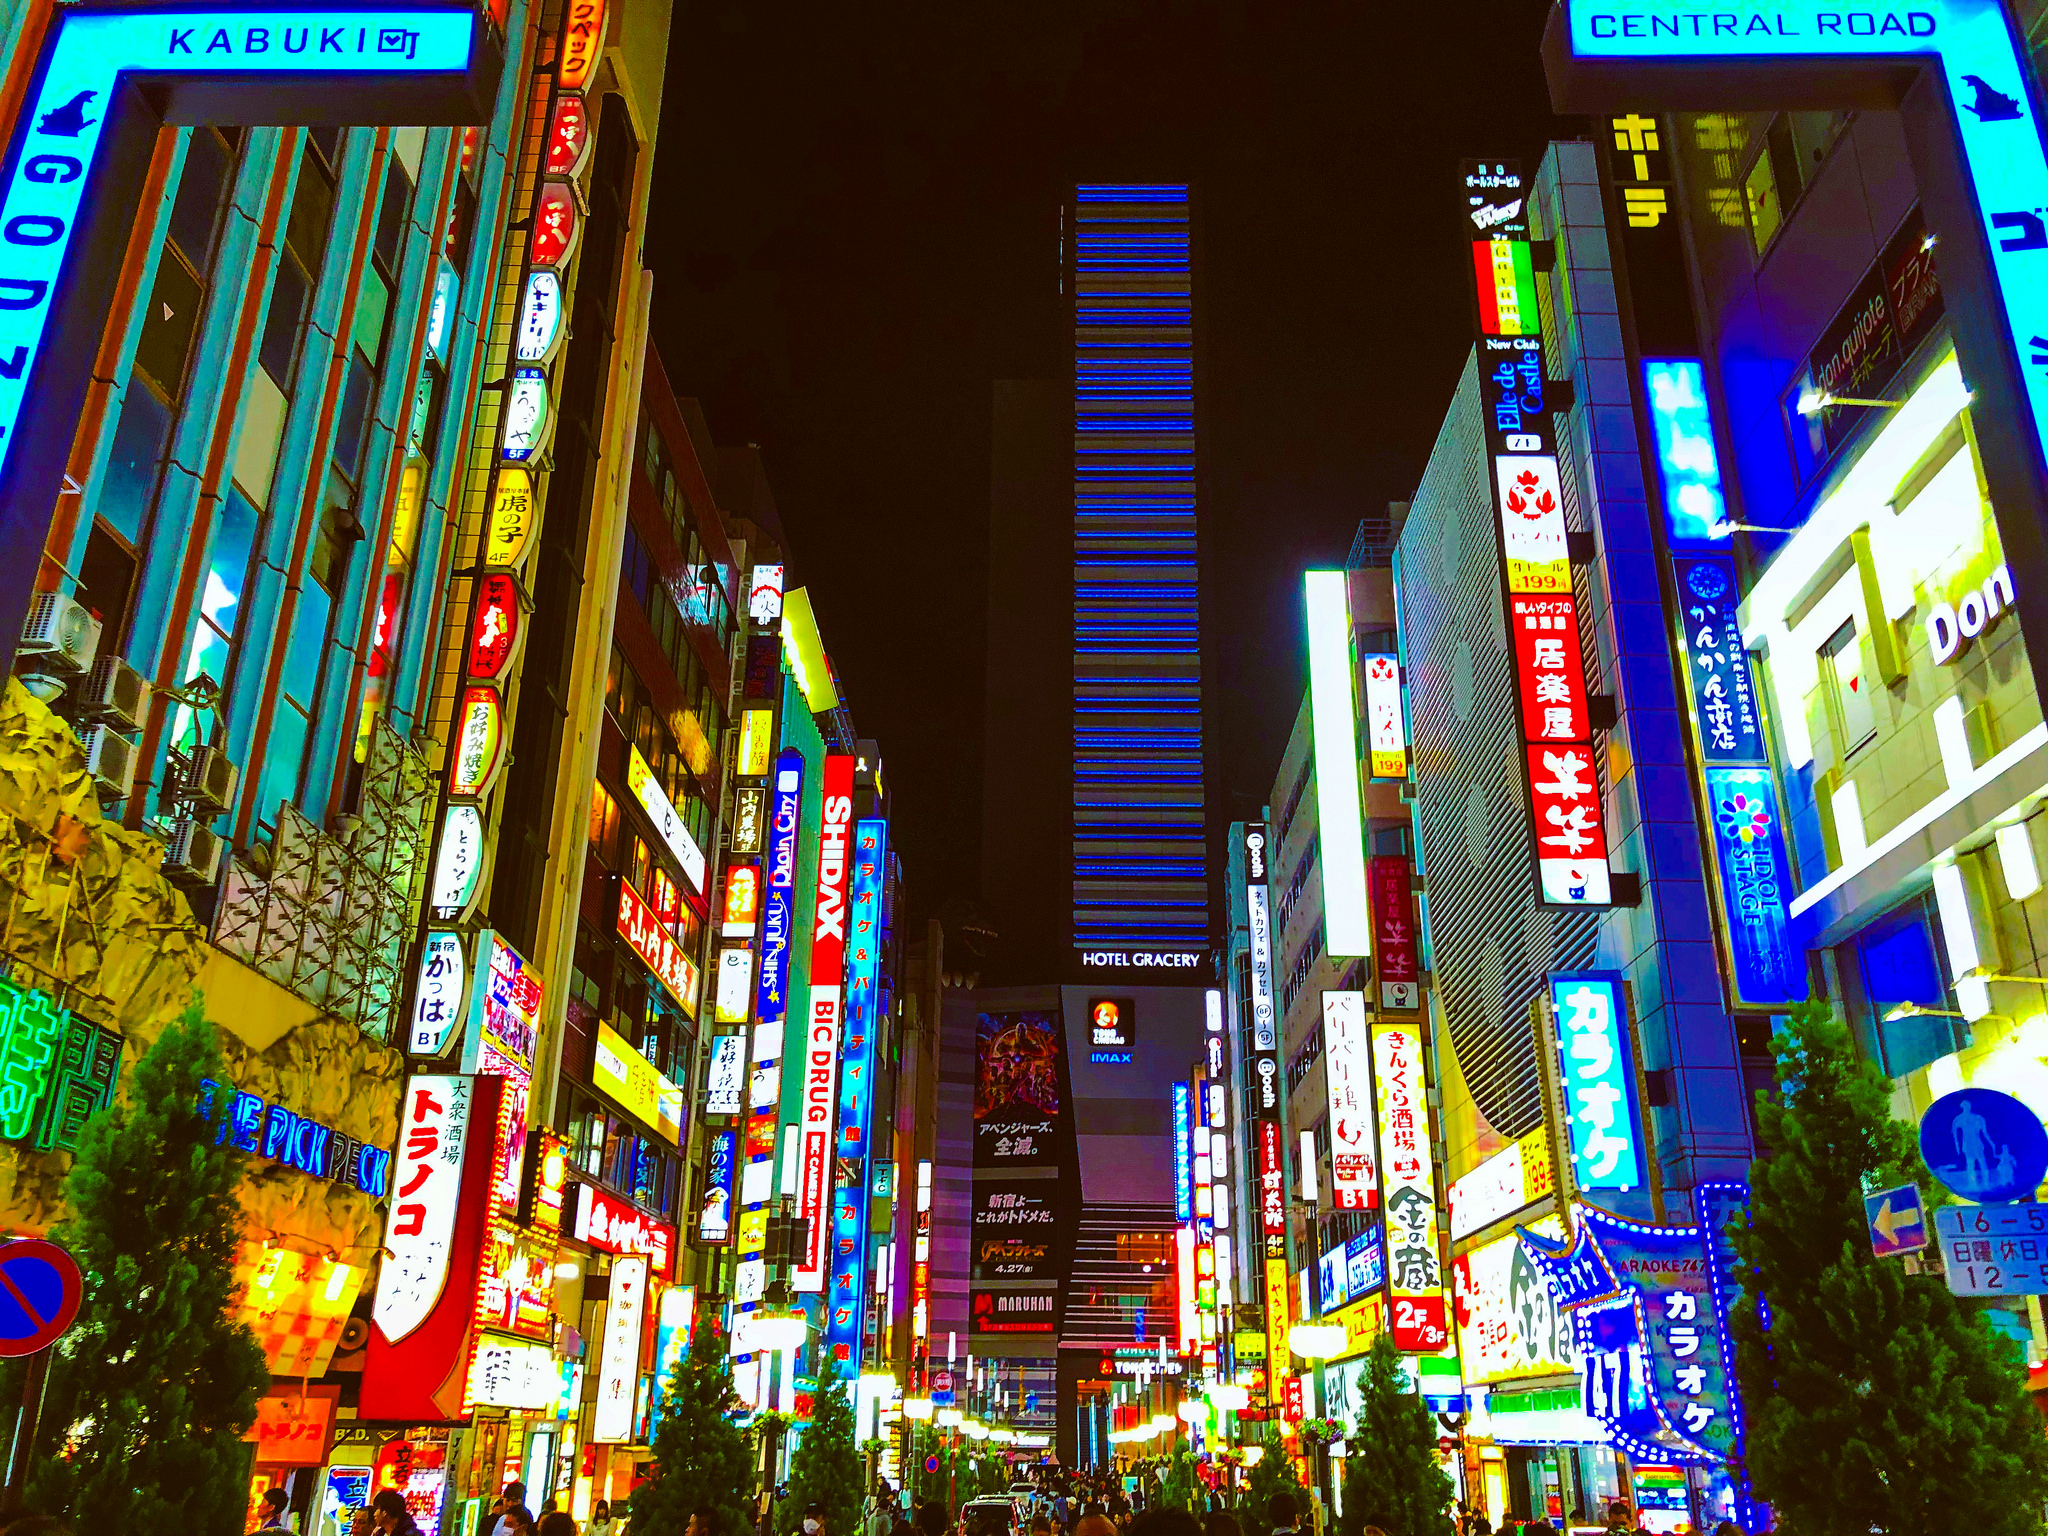 First Time Travelling to Japan? Here's our Ultimate Guide to Beat the Jet Lag and survive those first few hours in a new country!